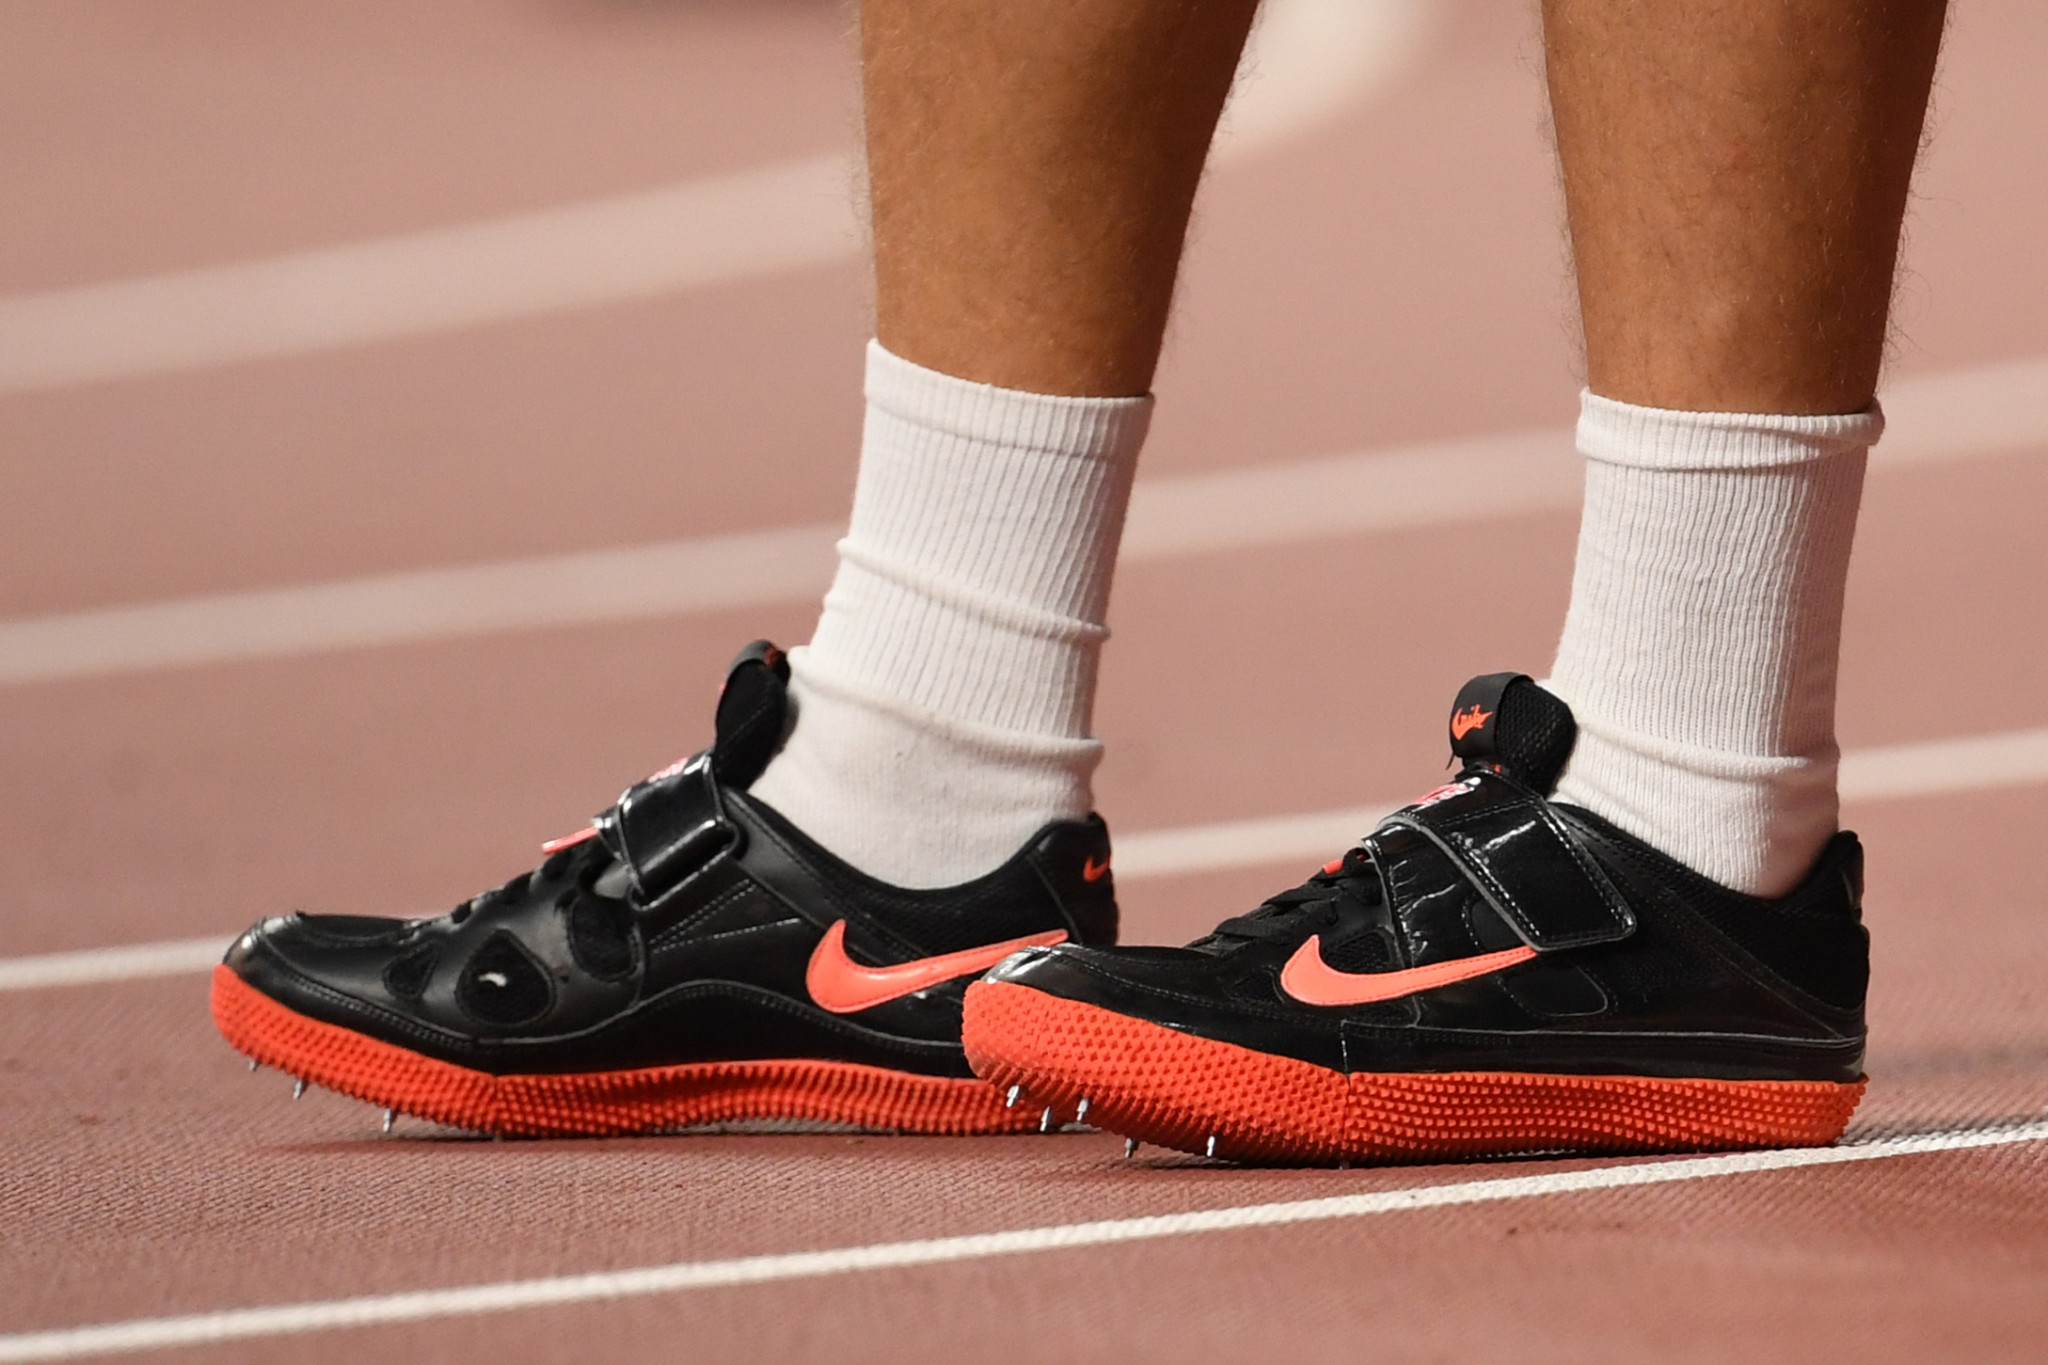 World Athletics extends maximum height limits to track spikes